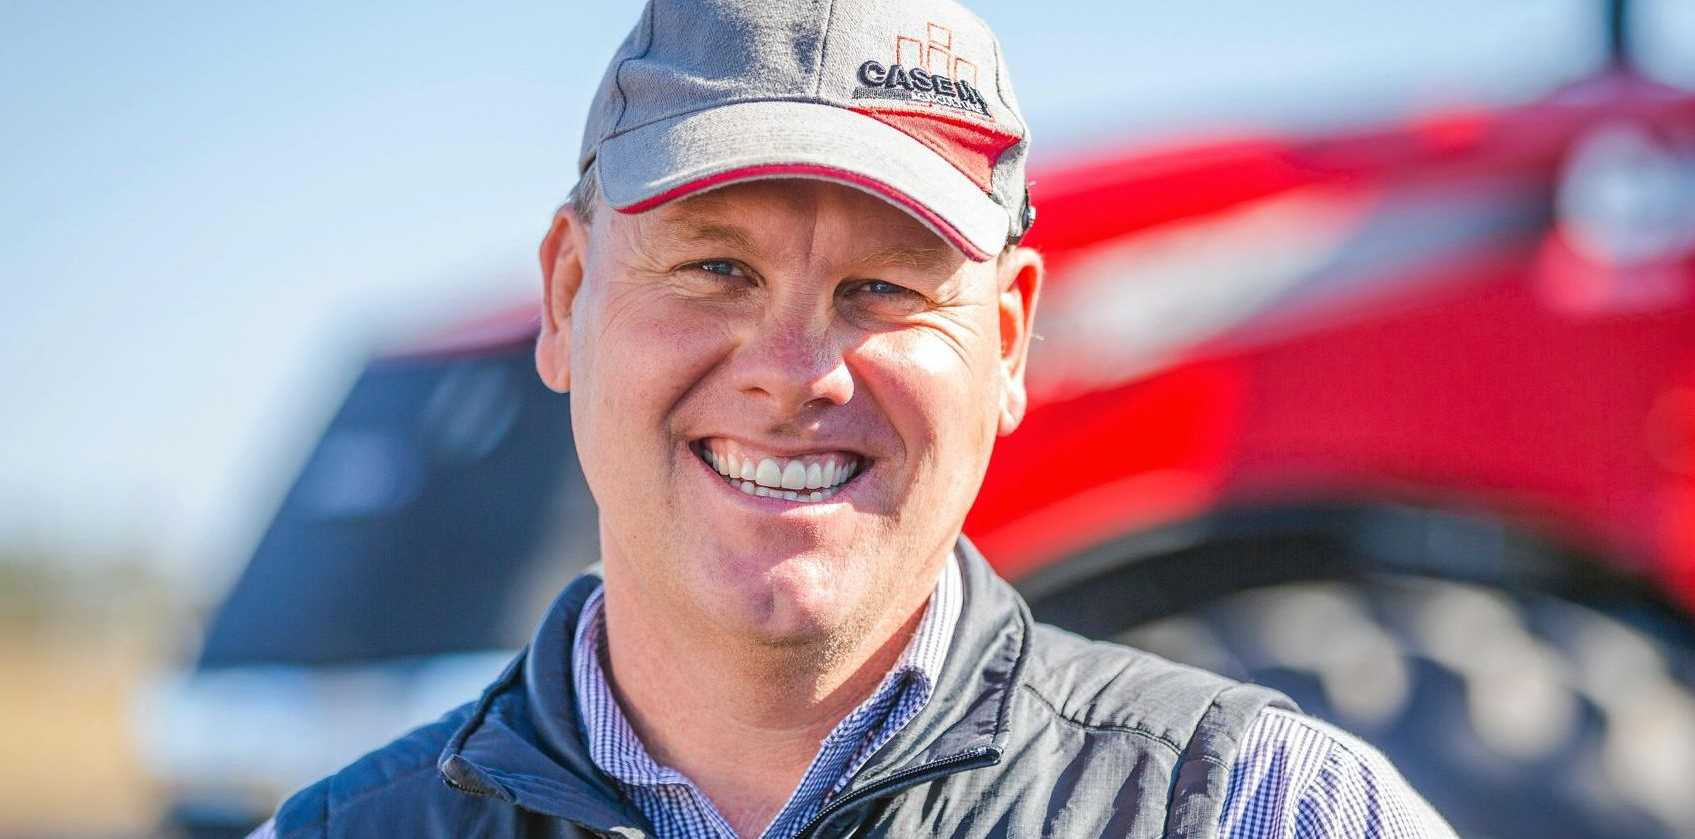 Managing Director Mick McDonald is excited about bringing trucks into the Wideland Group fold.